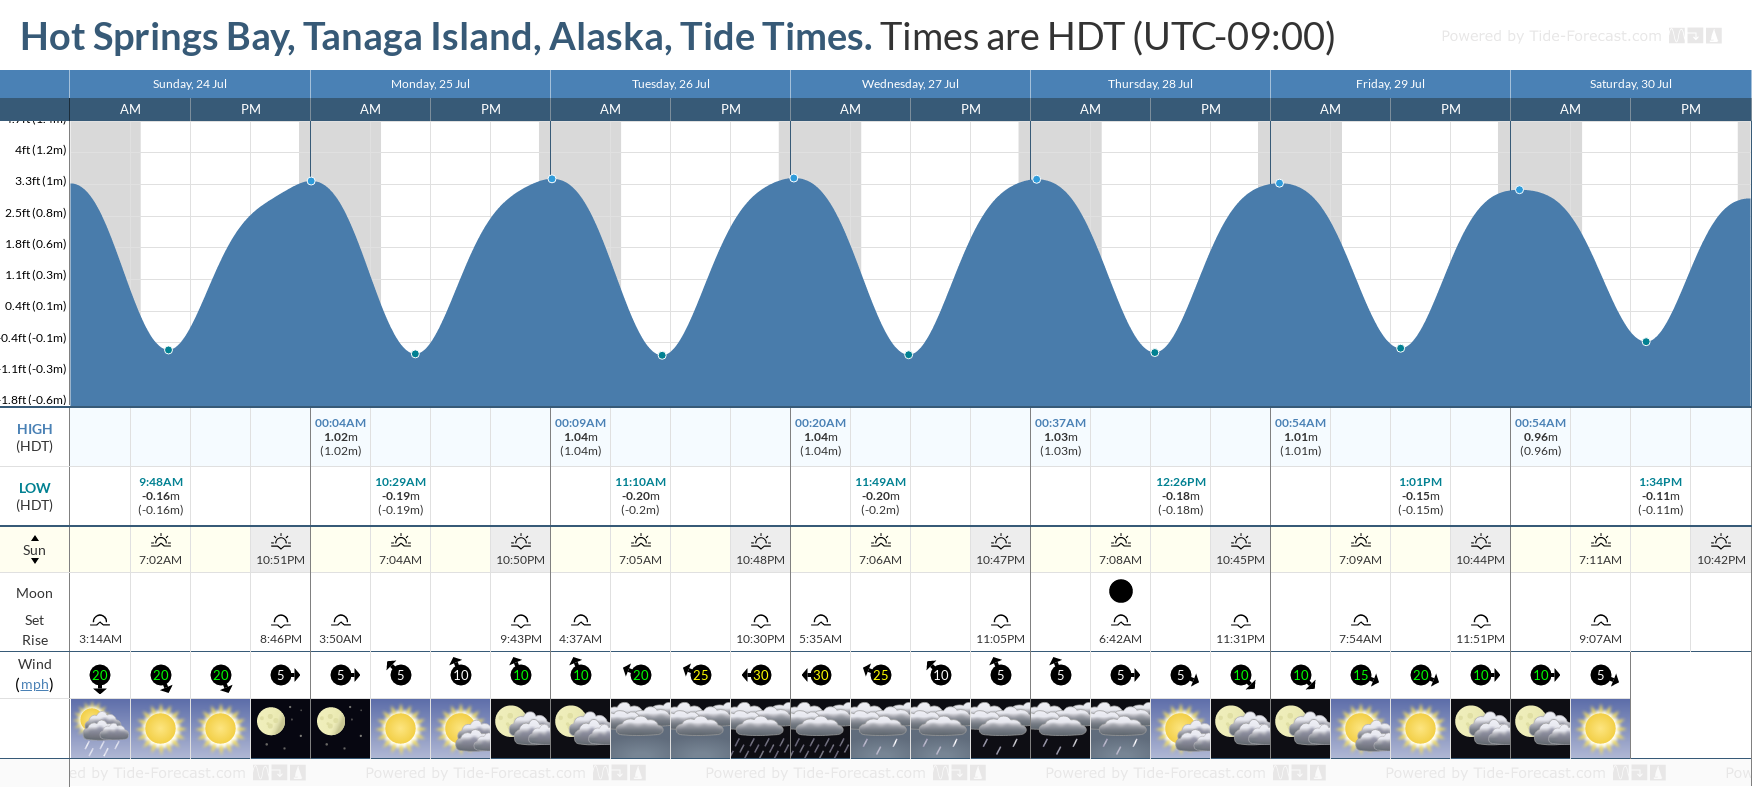 Hot Springs Bay, Tanaga Island, Alaska Tide Chart including high and low tide tide times for the next 7 days